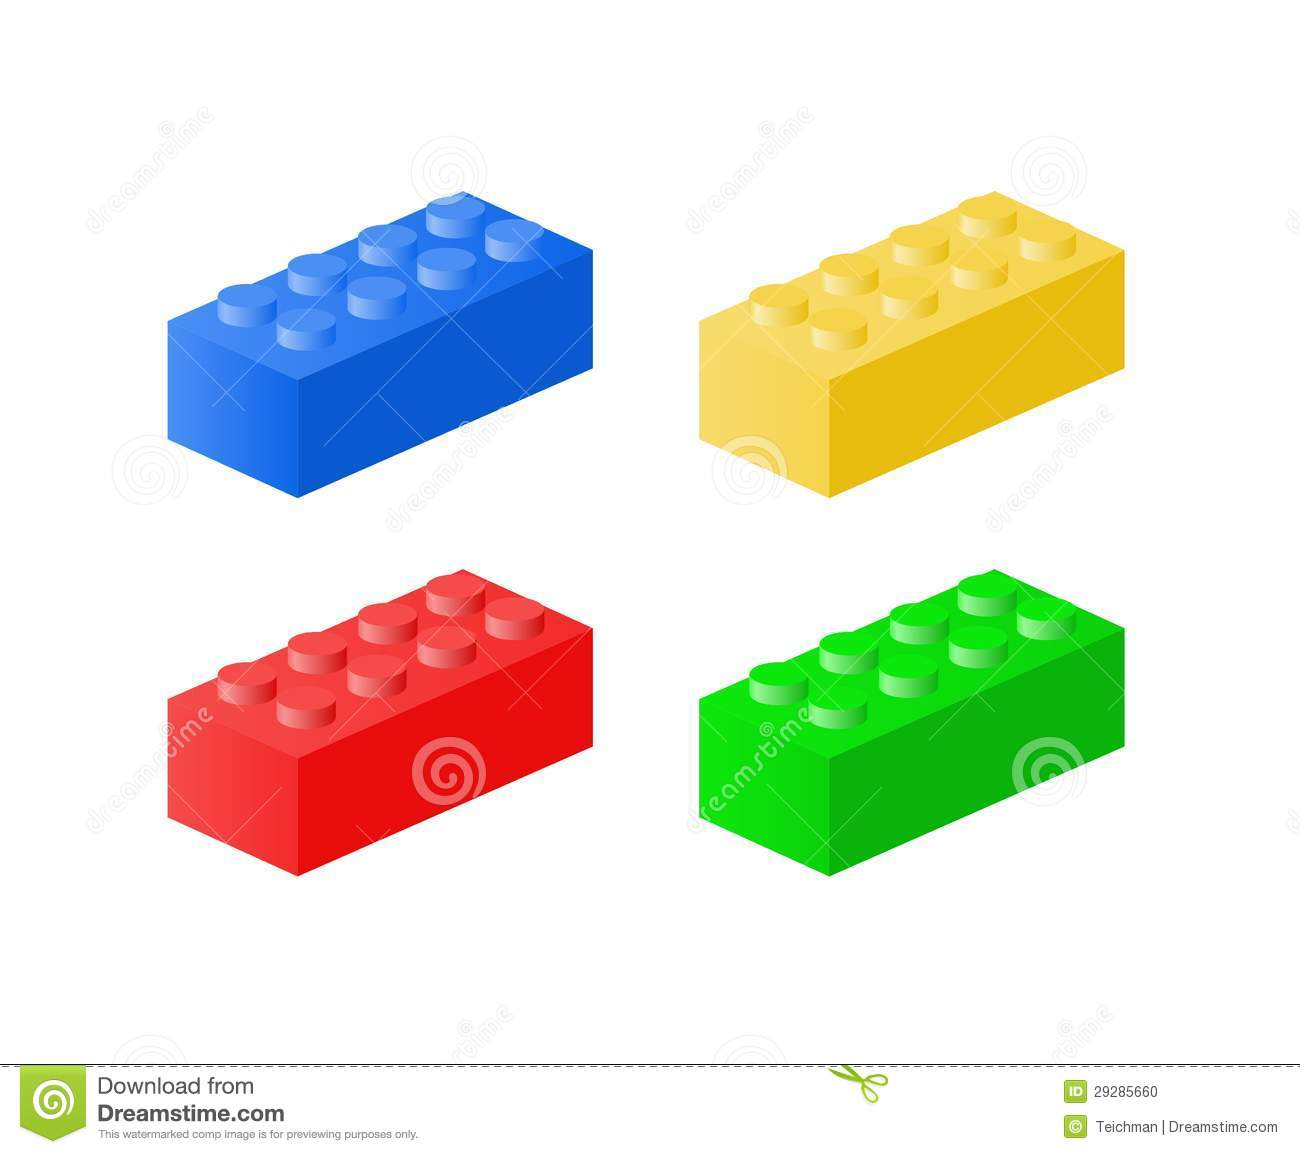 Lego pieces clipart png black and white Lego Brick Clipart - Clipart Kid png black and white